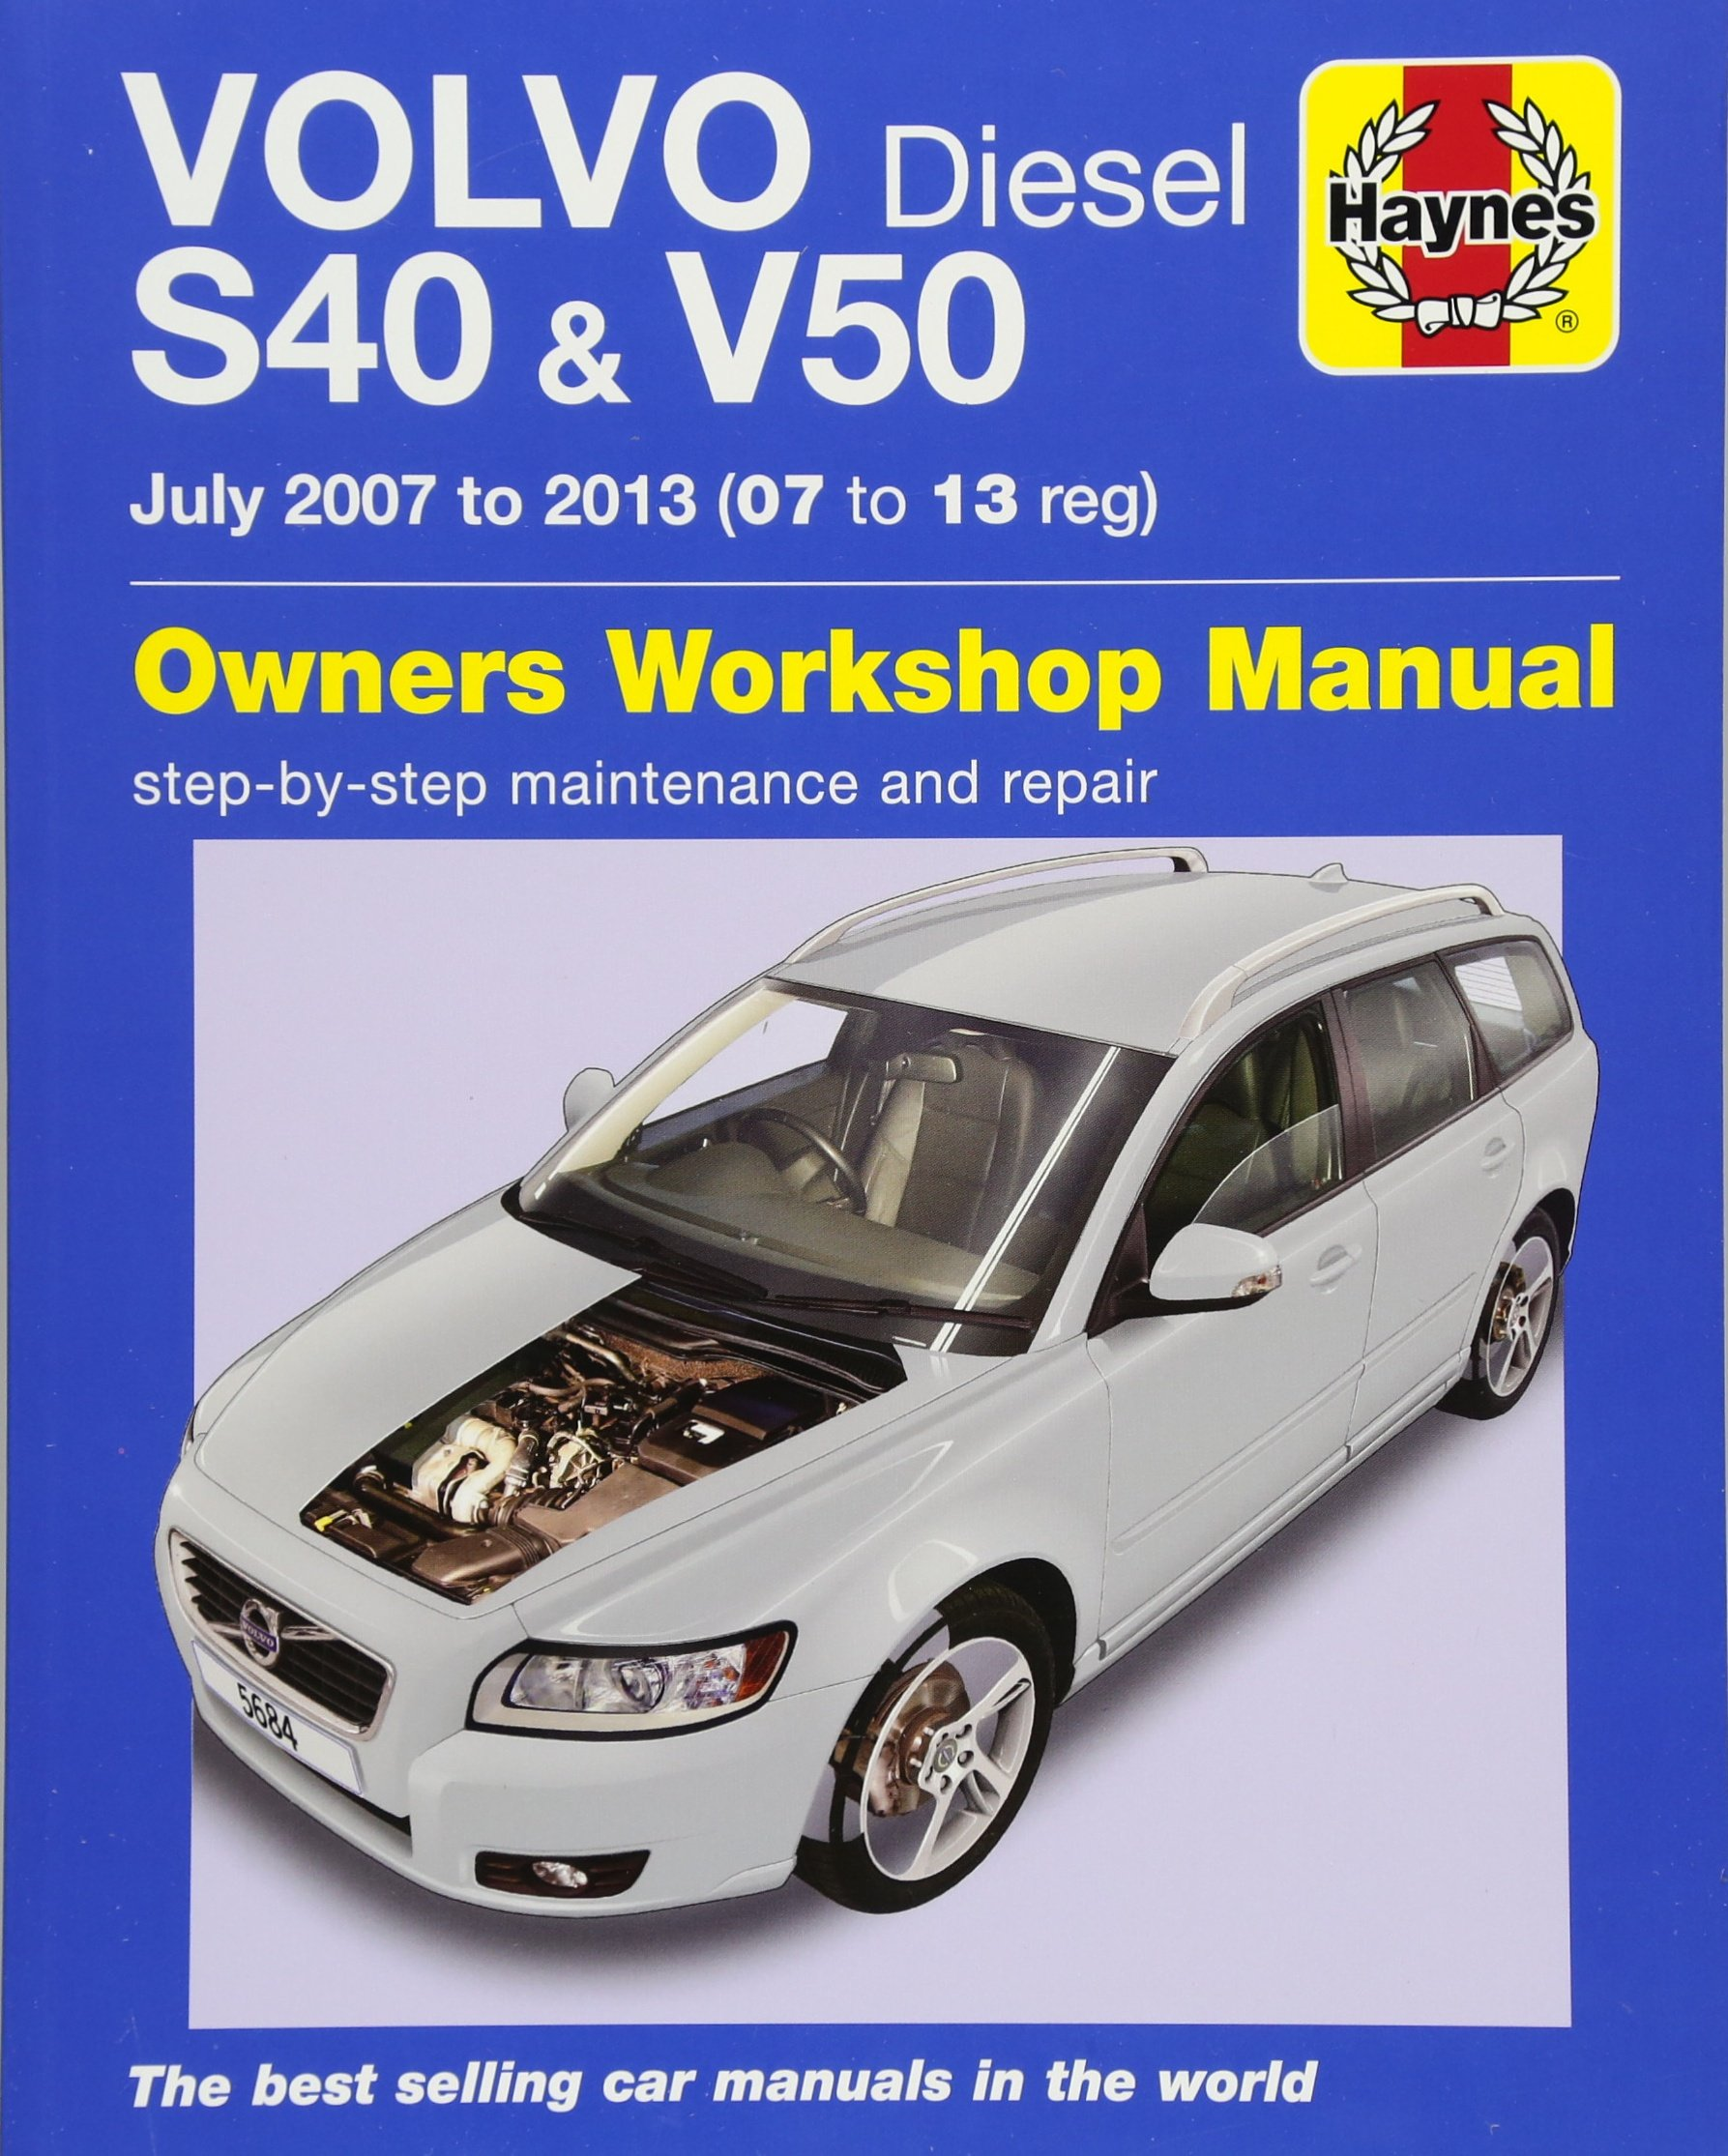 Volvo S40 & V50 Diesel Owners Workshop Manual: 2007-13: Amazon.es: Chris Randall: Libros en idiomas extranjeros